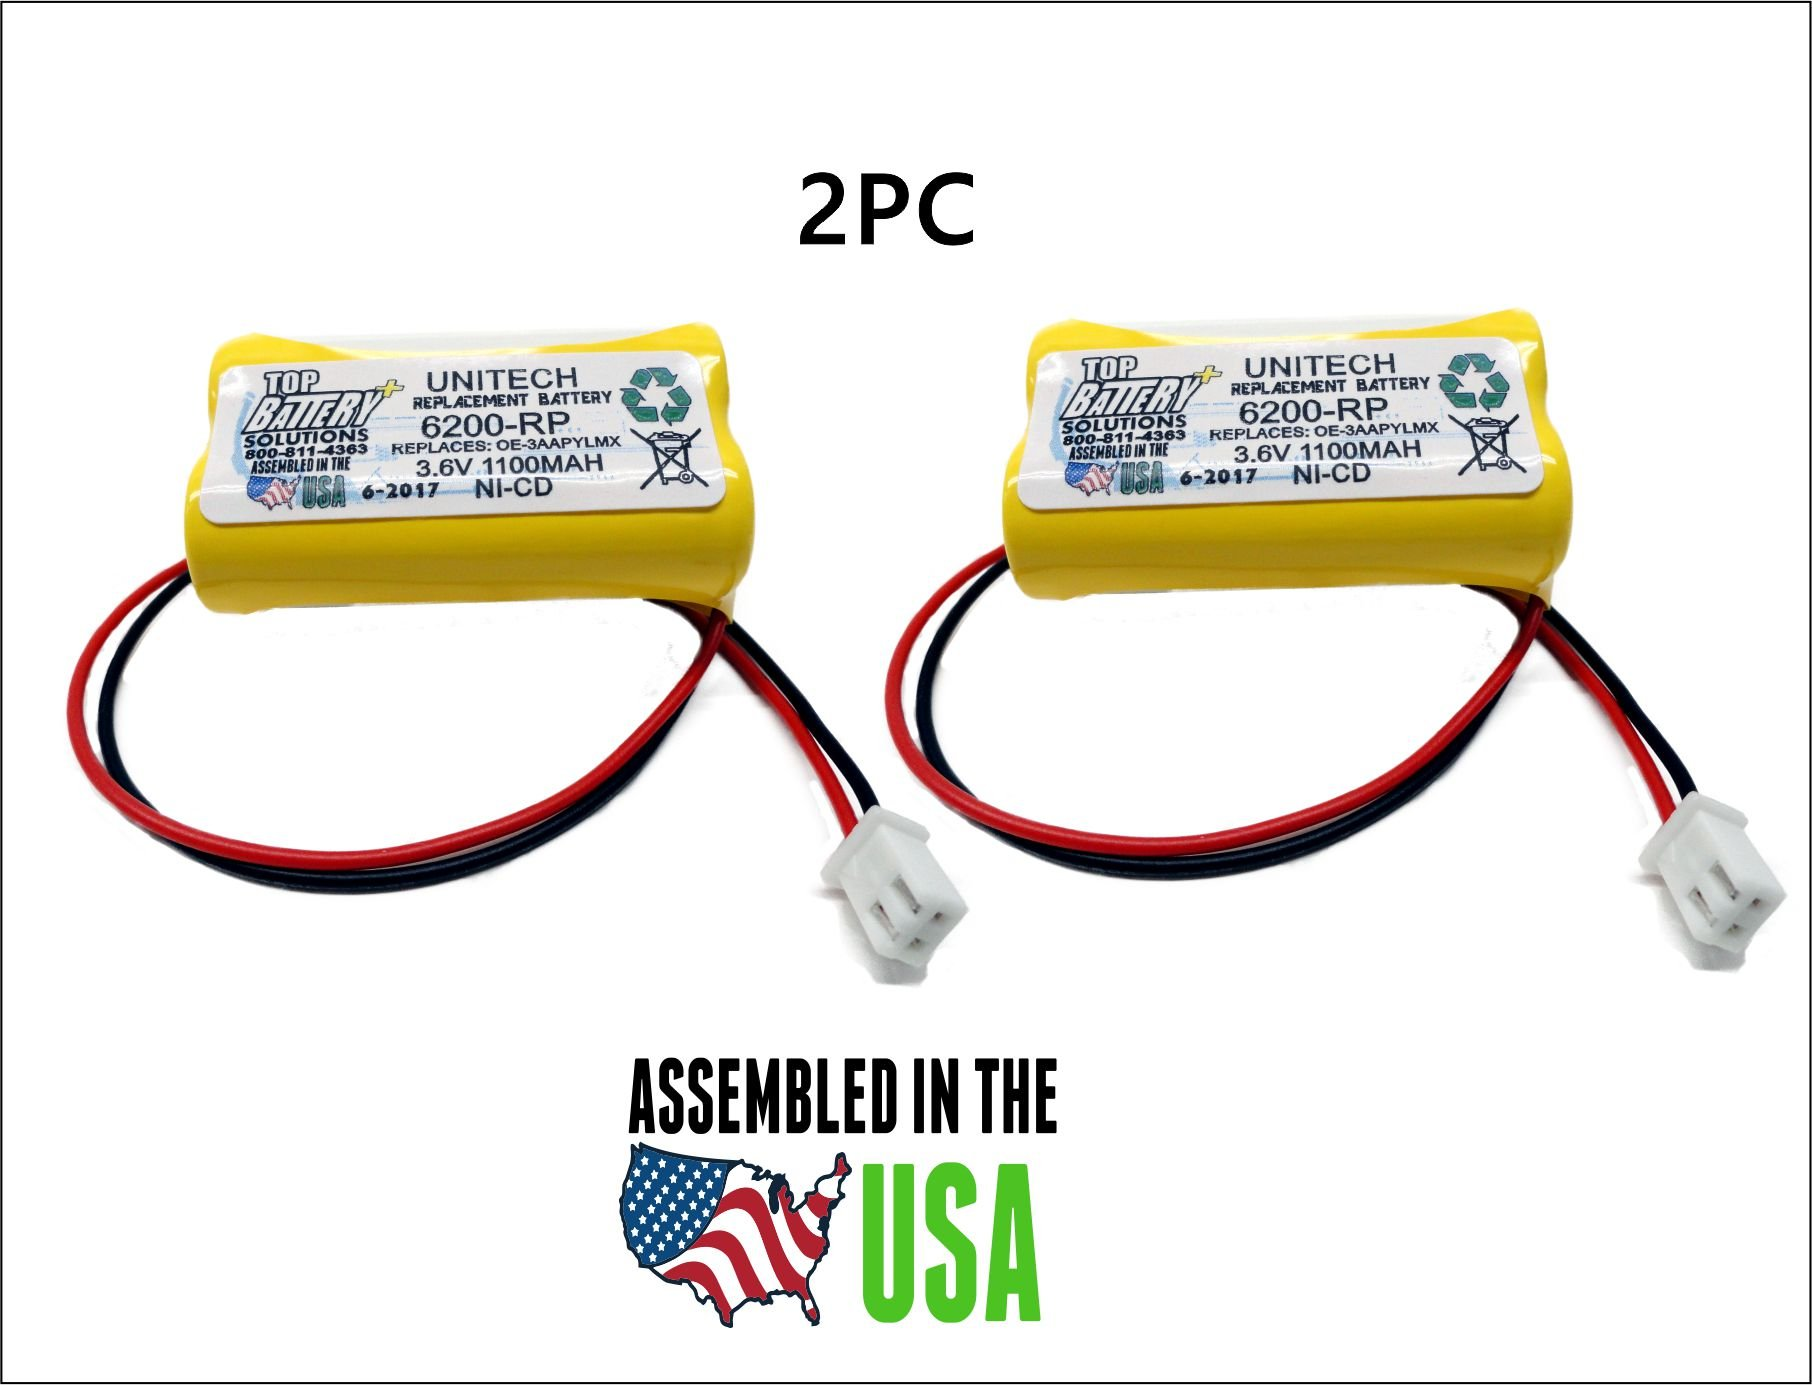 2PC UNITECH 6200RP 3.6V NICAD BATTERY REPLACEMENT